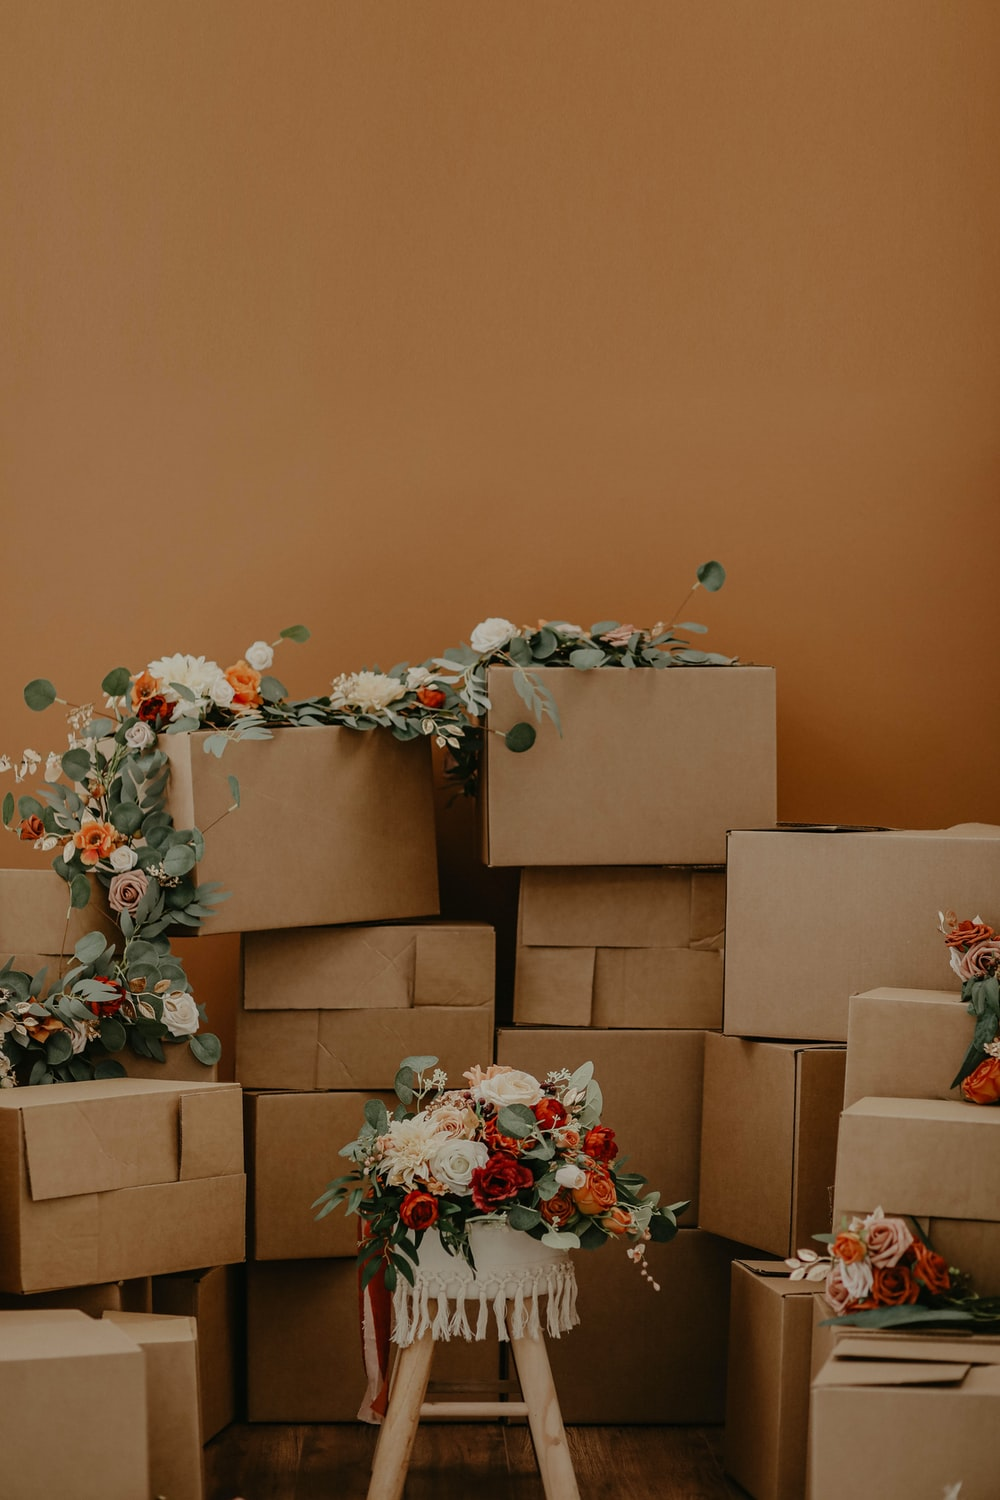 white and red flowers on brown cardboard boxes